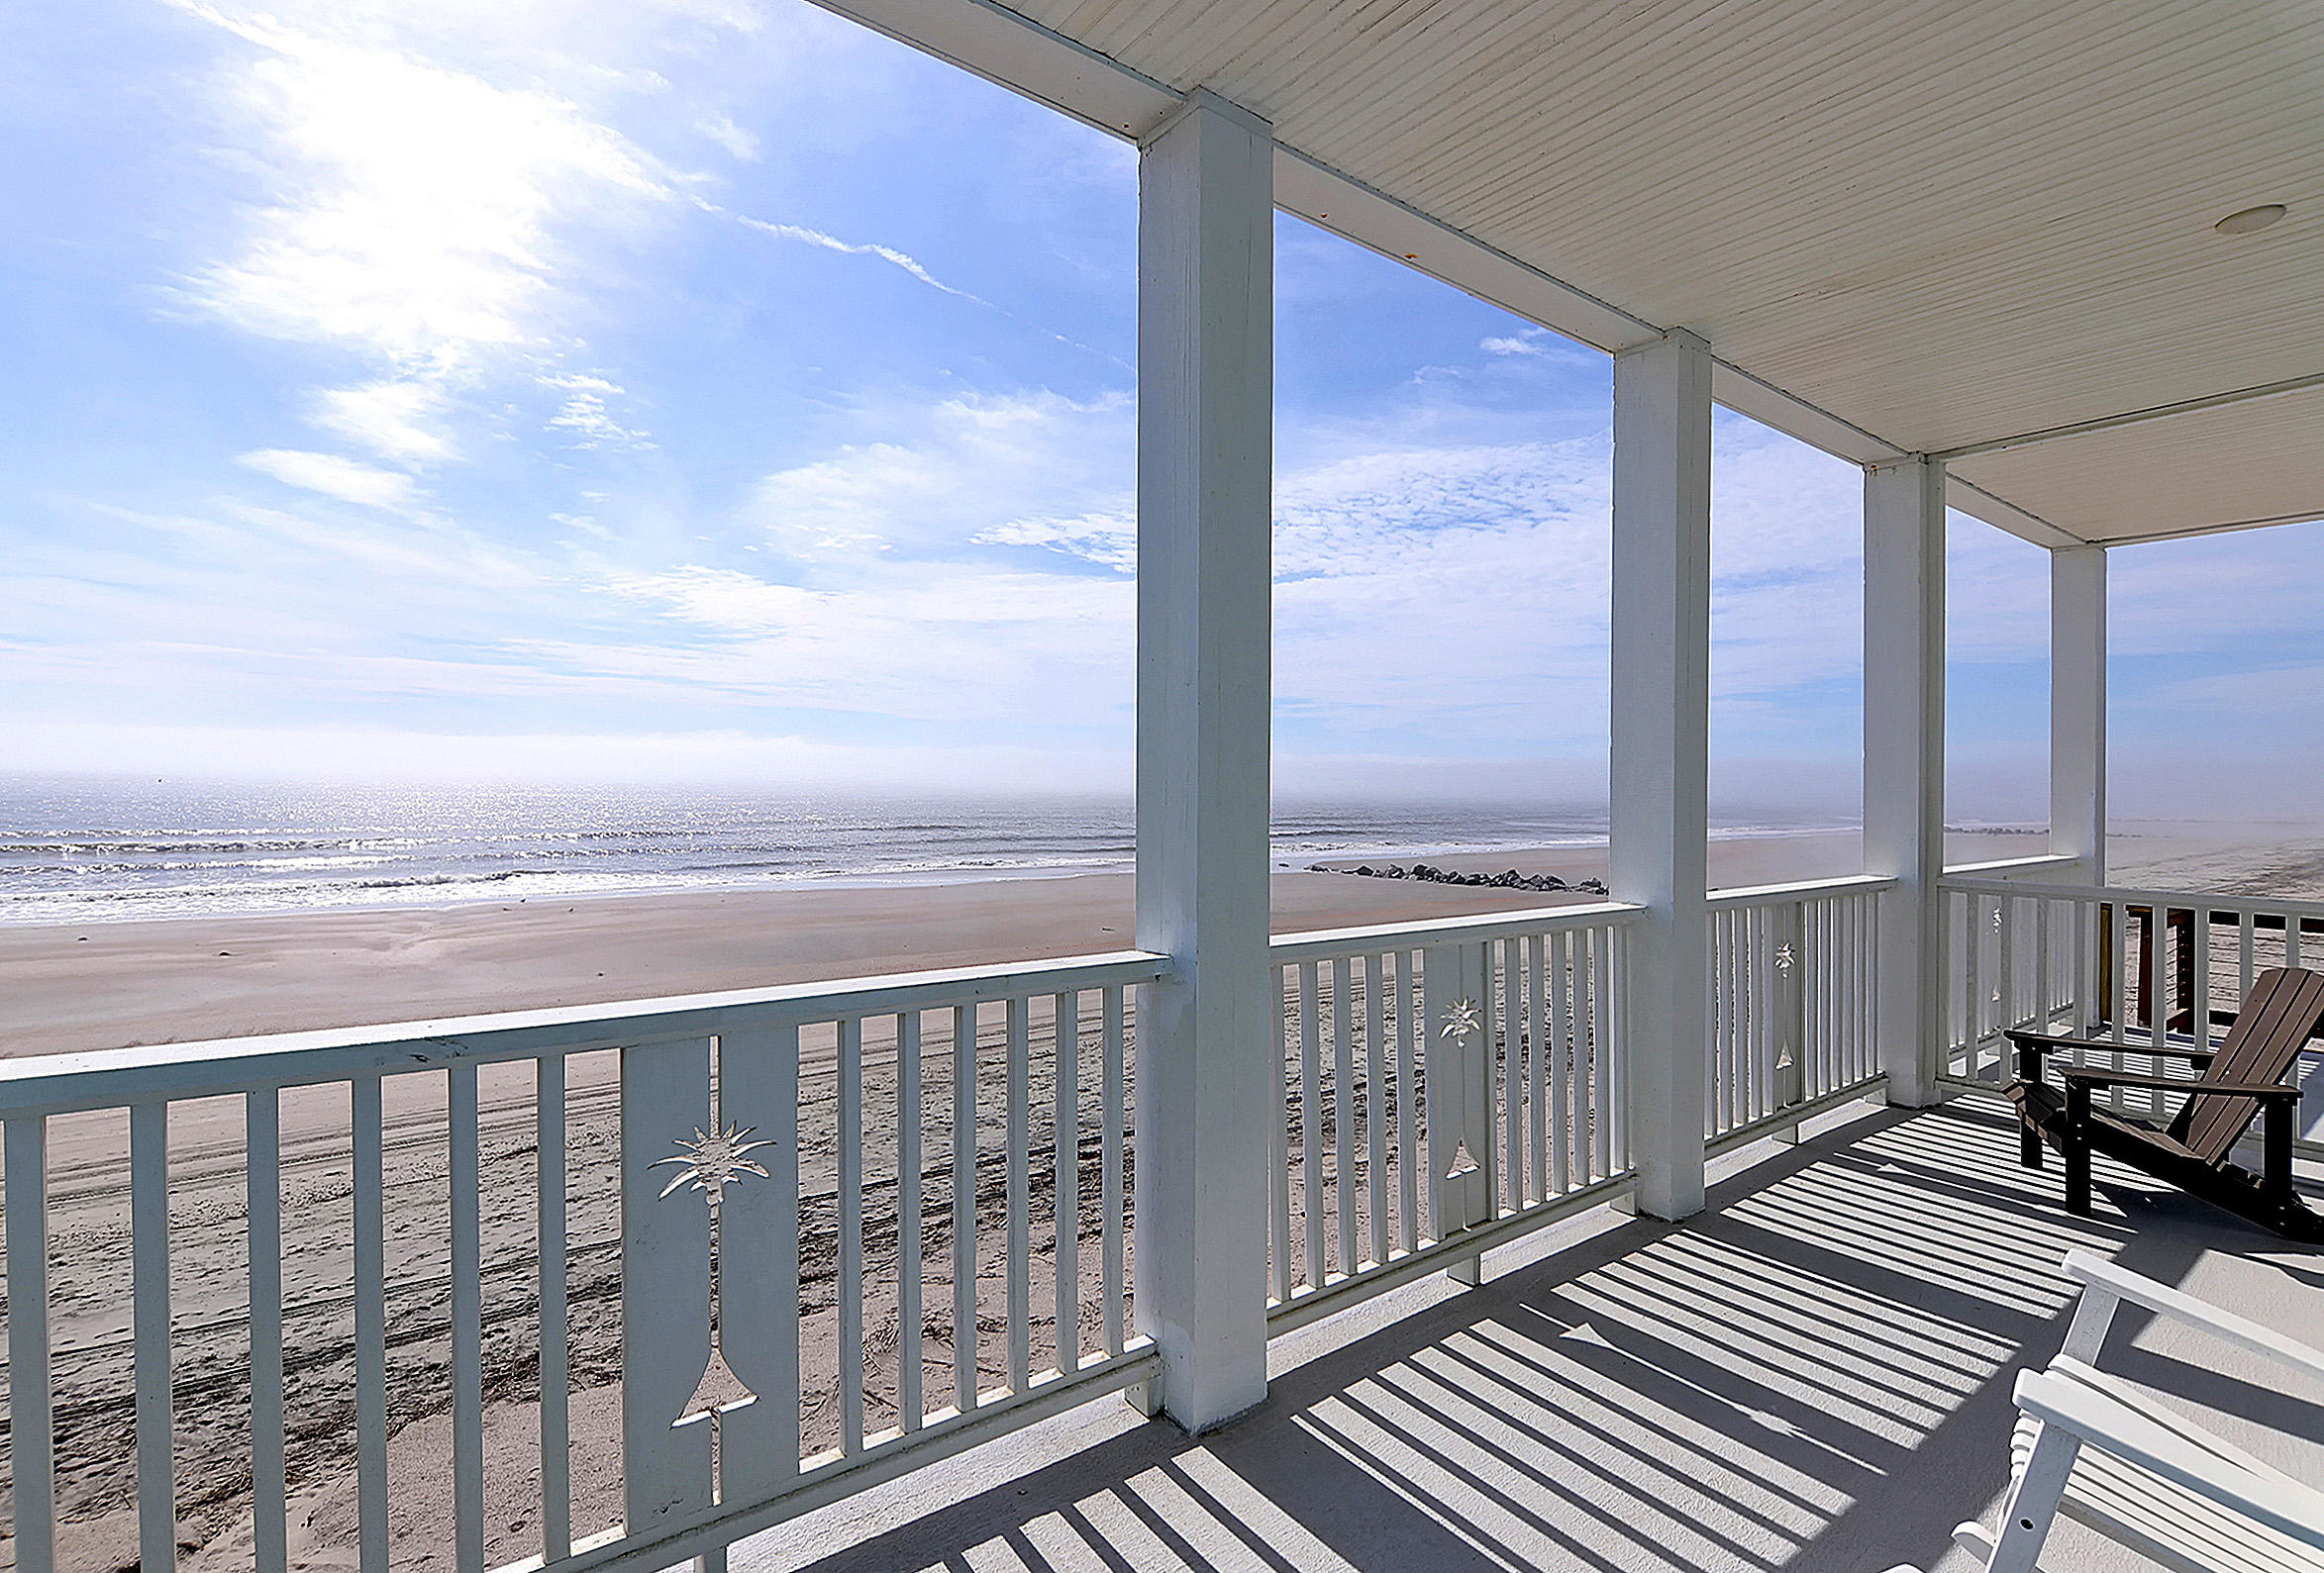 E Folly Bch Shores Homes For Sale - 1707 Ashley, Folly Beach, SC - 17